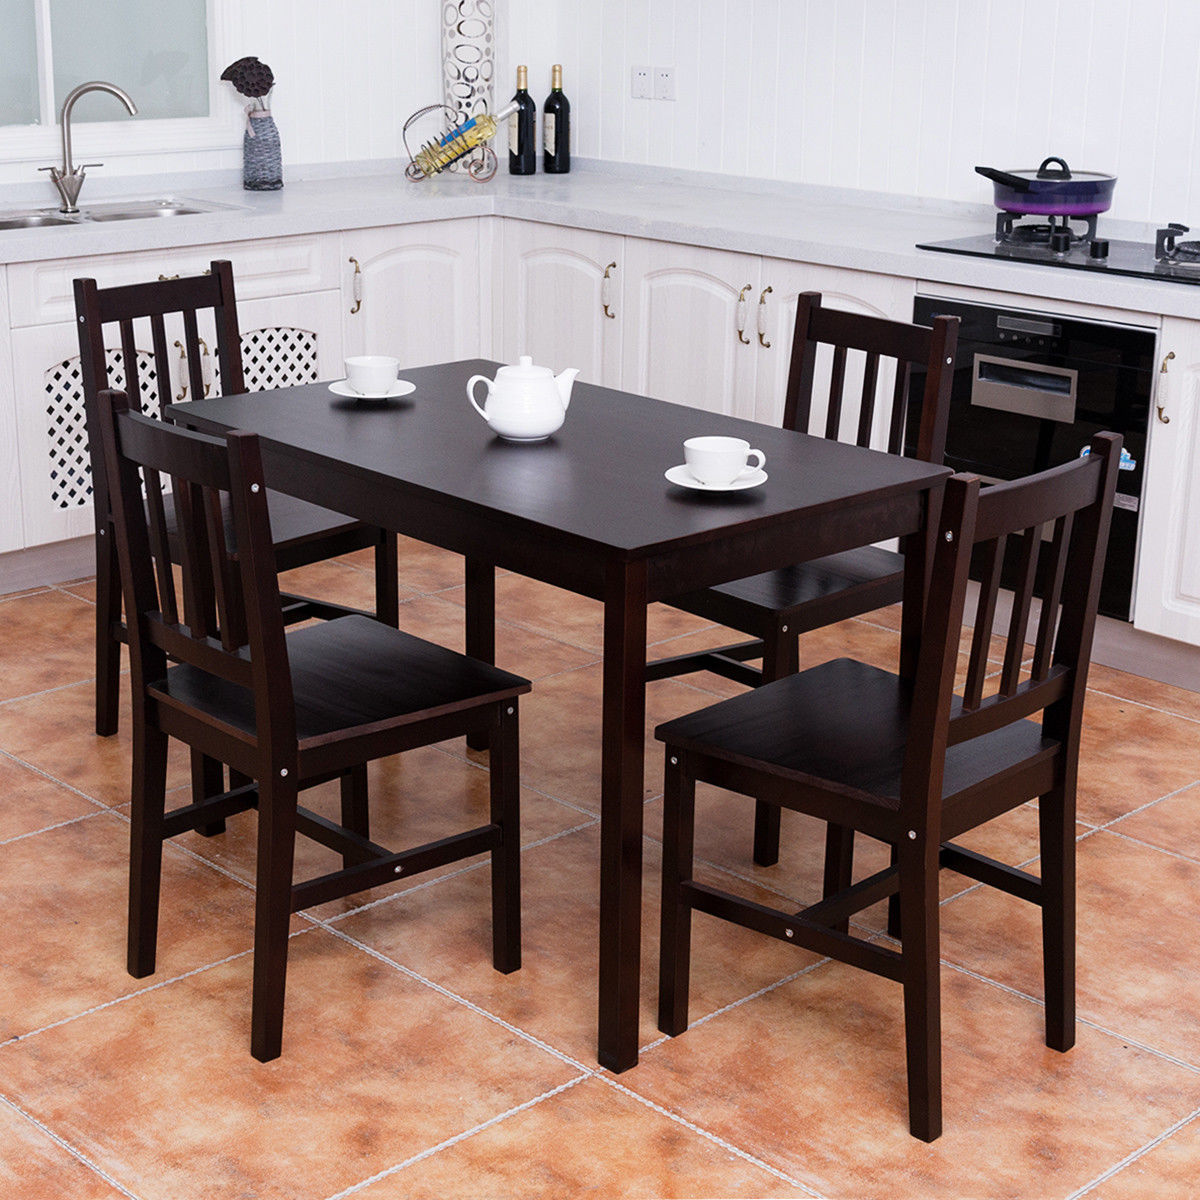 Product Image Costway 5PCS Solid Pine Wood Dining Set Table And 4 Chairs  Home Kitchen Furniture Brown